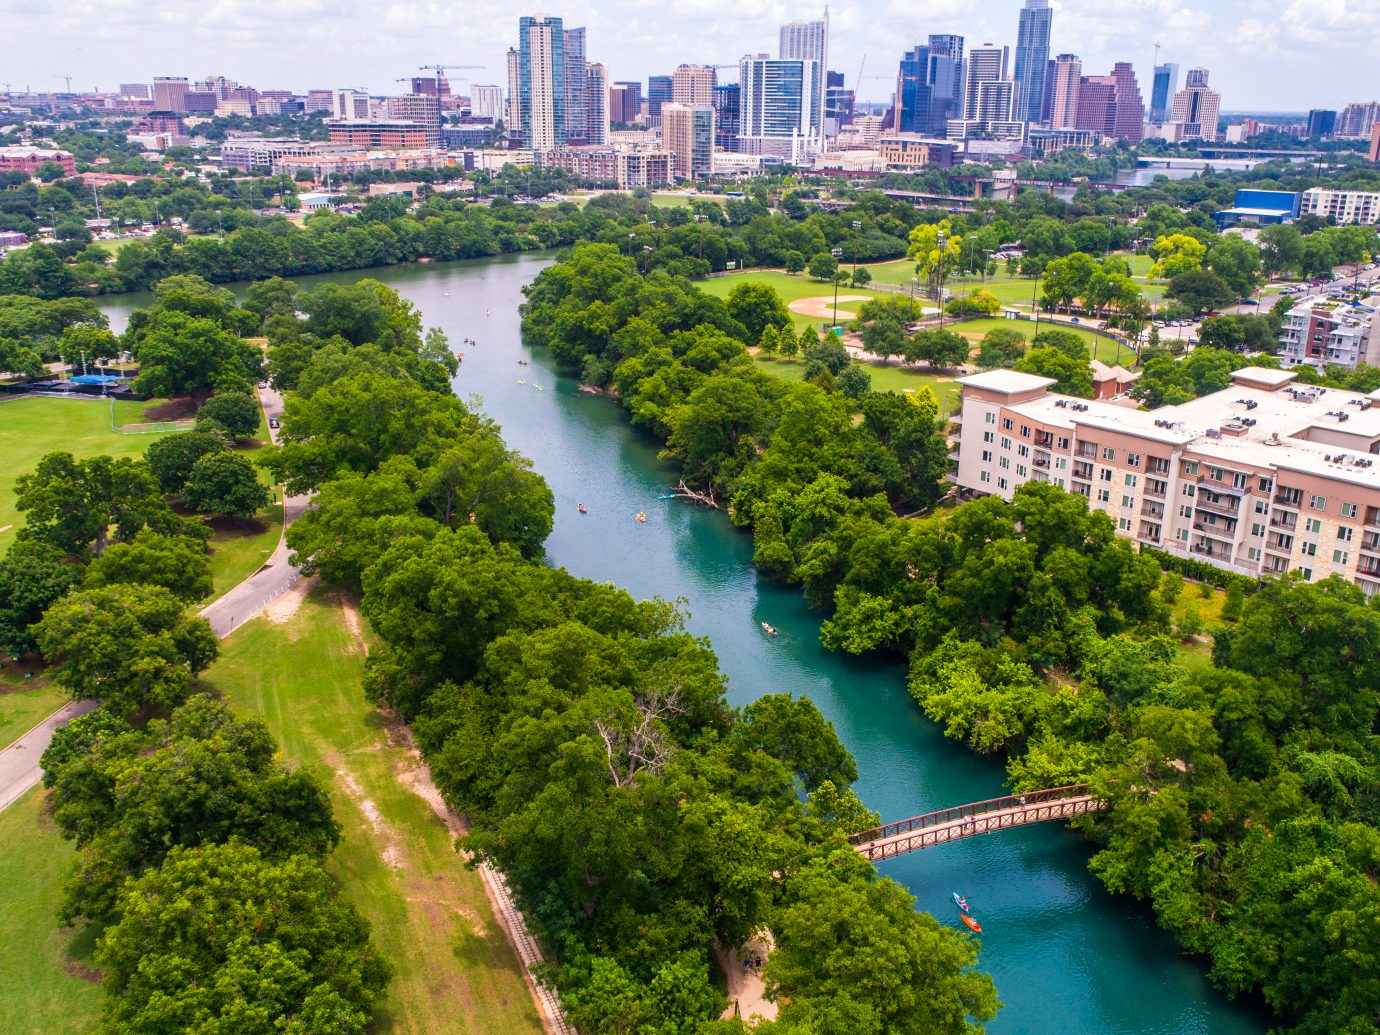 Aerial view of Austin Texas and barton springs pool